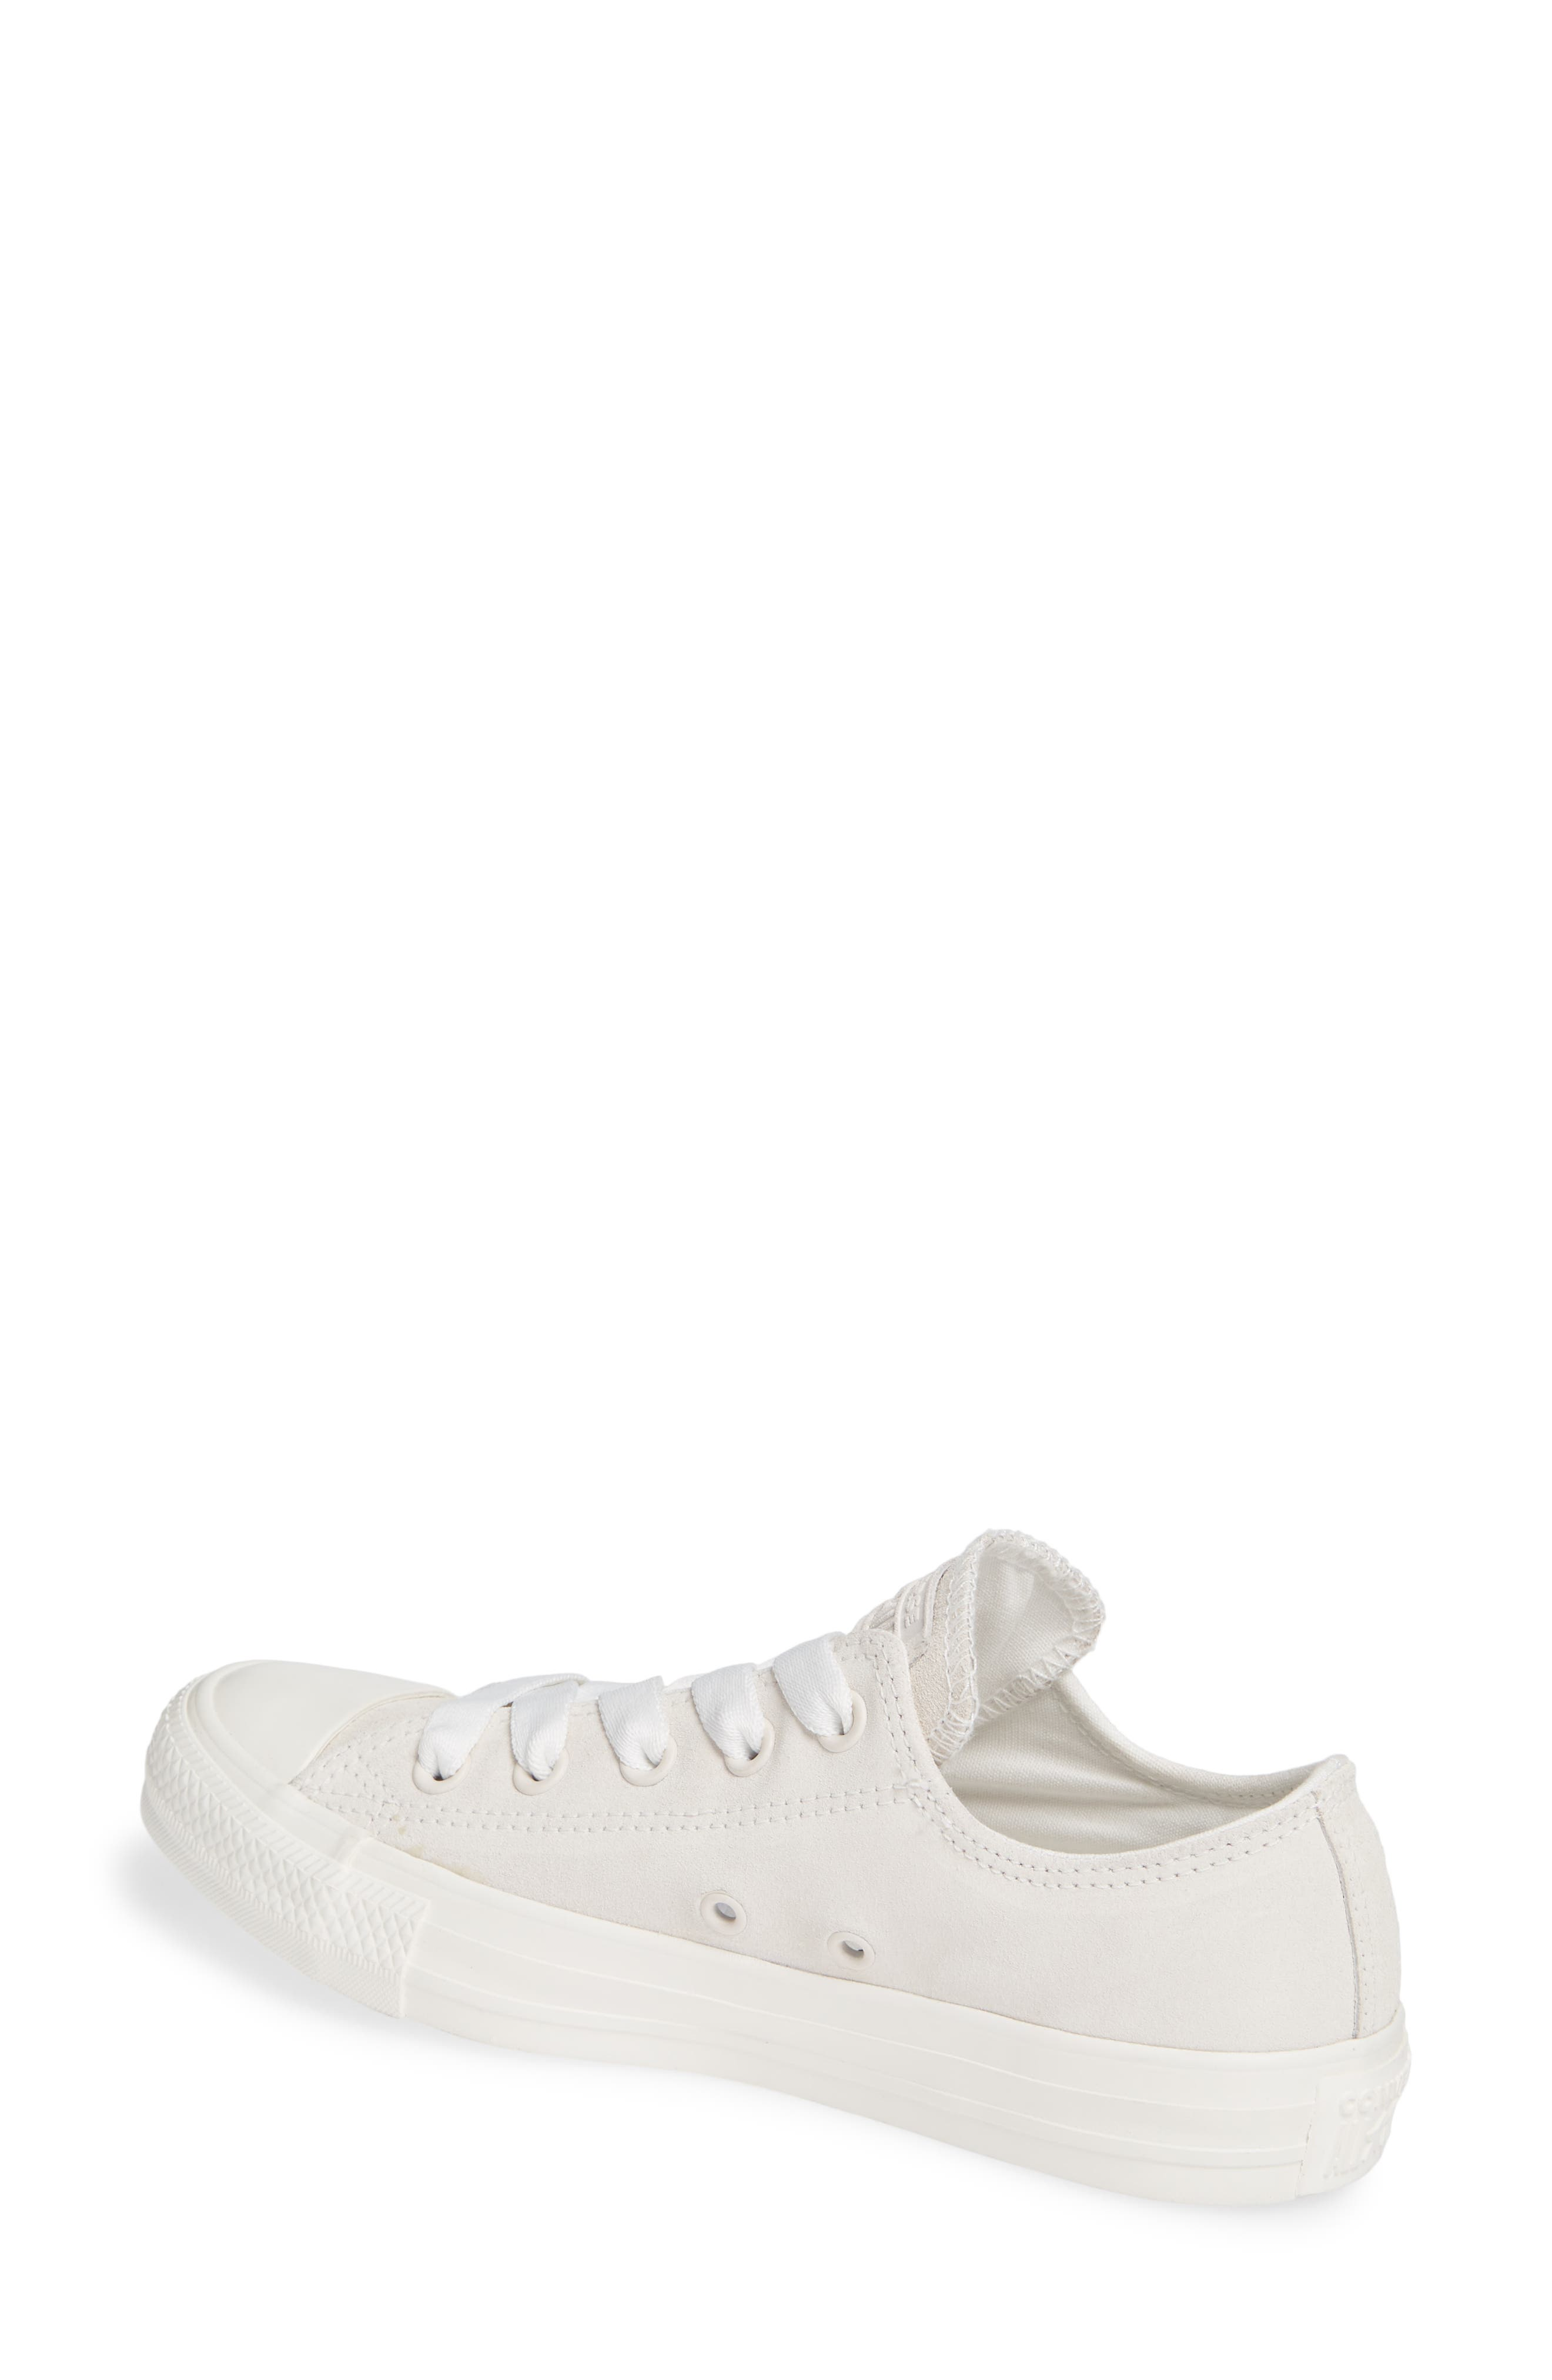 Chuck Taylor<sup>®</sup> All Star<sup>®</sup> Ox Sneaker,                             Alternate thumbnail 2, color,                             VINTAGE WHITE SUEDE